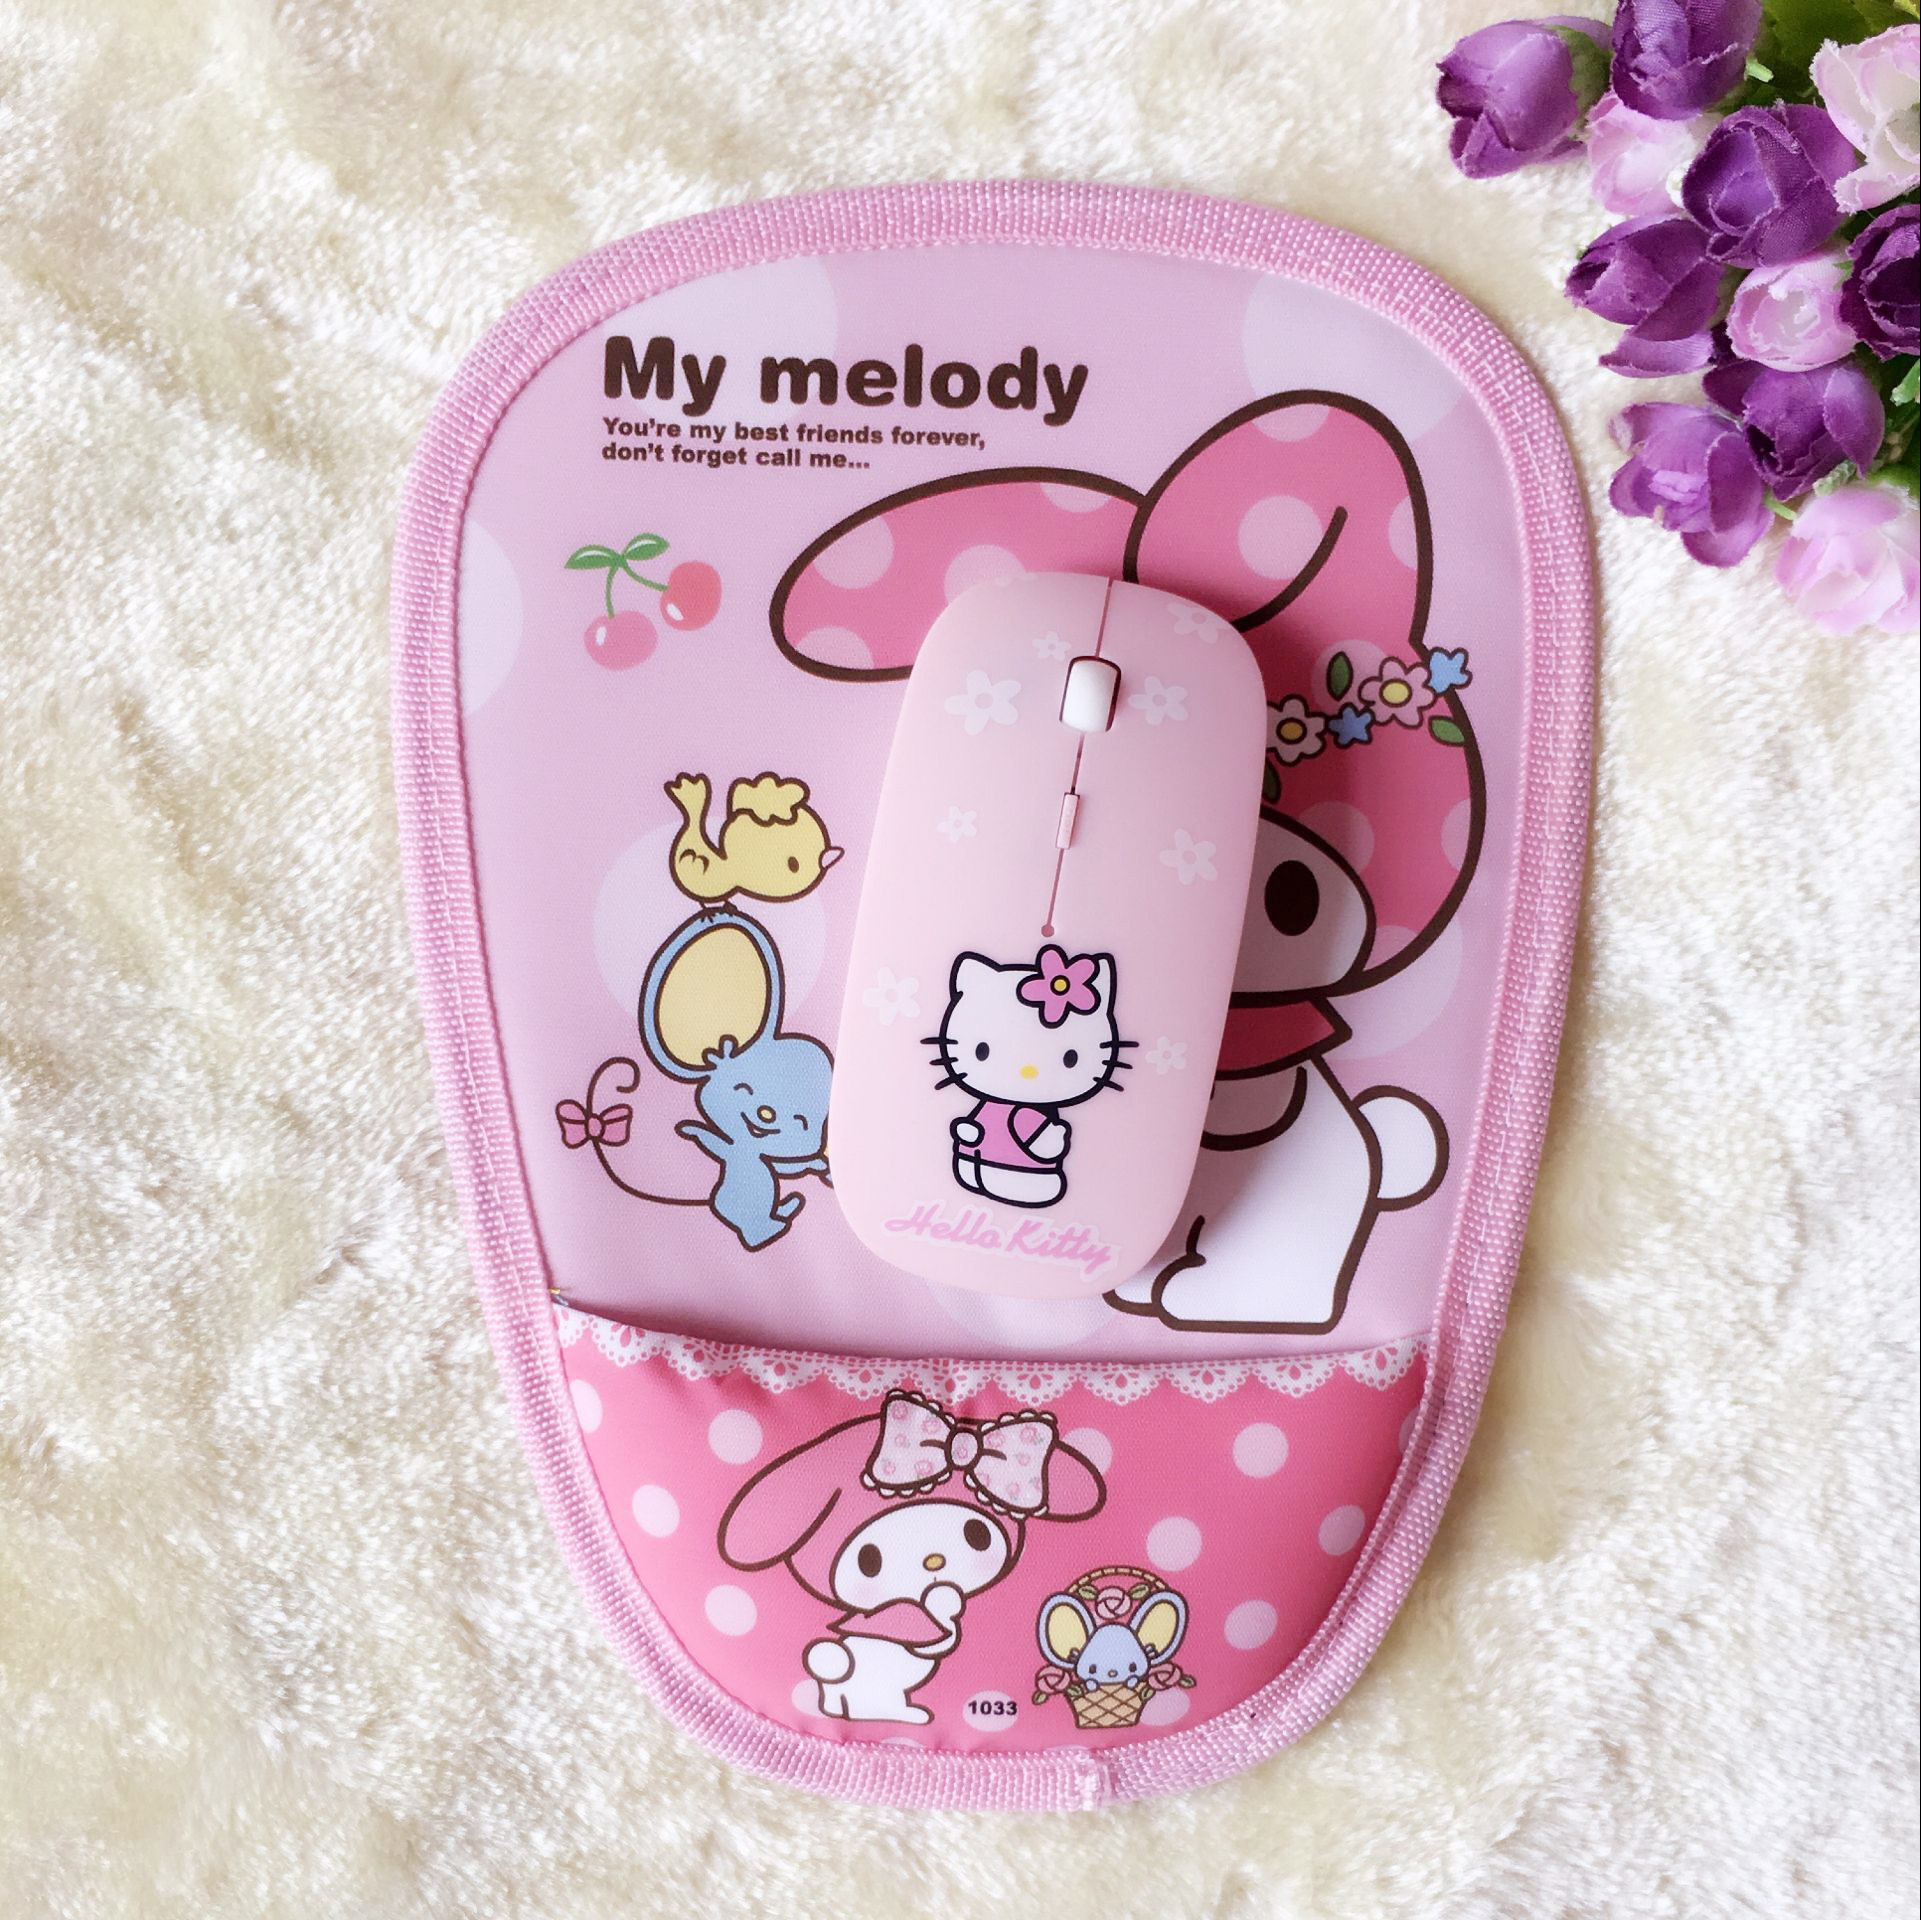 8cab5193e Merlot Kitty Mouse Pad Doraemon Mouse Pad Hello Kitty Wrist Mouse Pad Pink  Cartoon